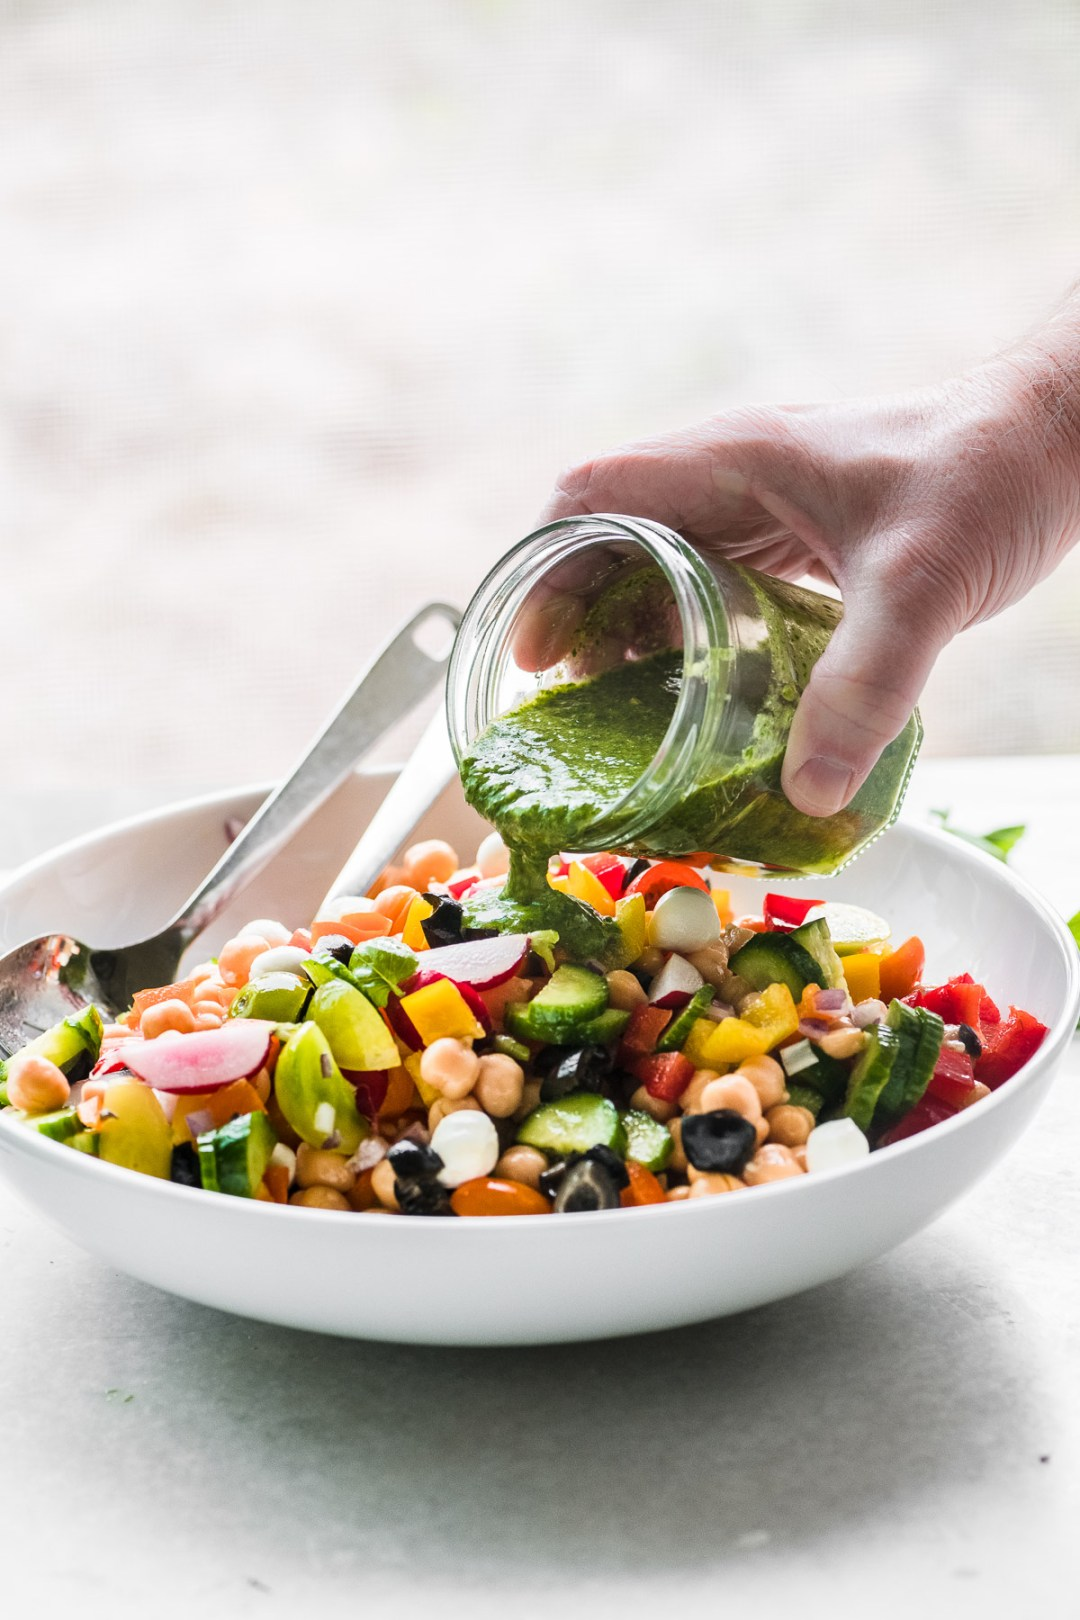 Dressing a Chickpea Salad with pesto